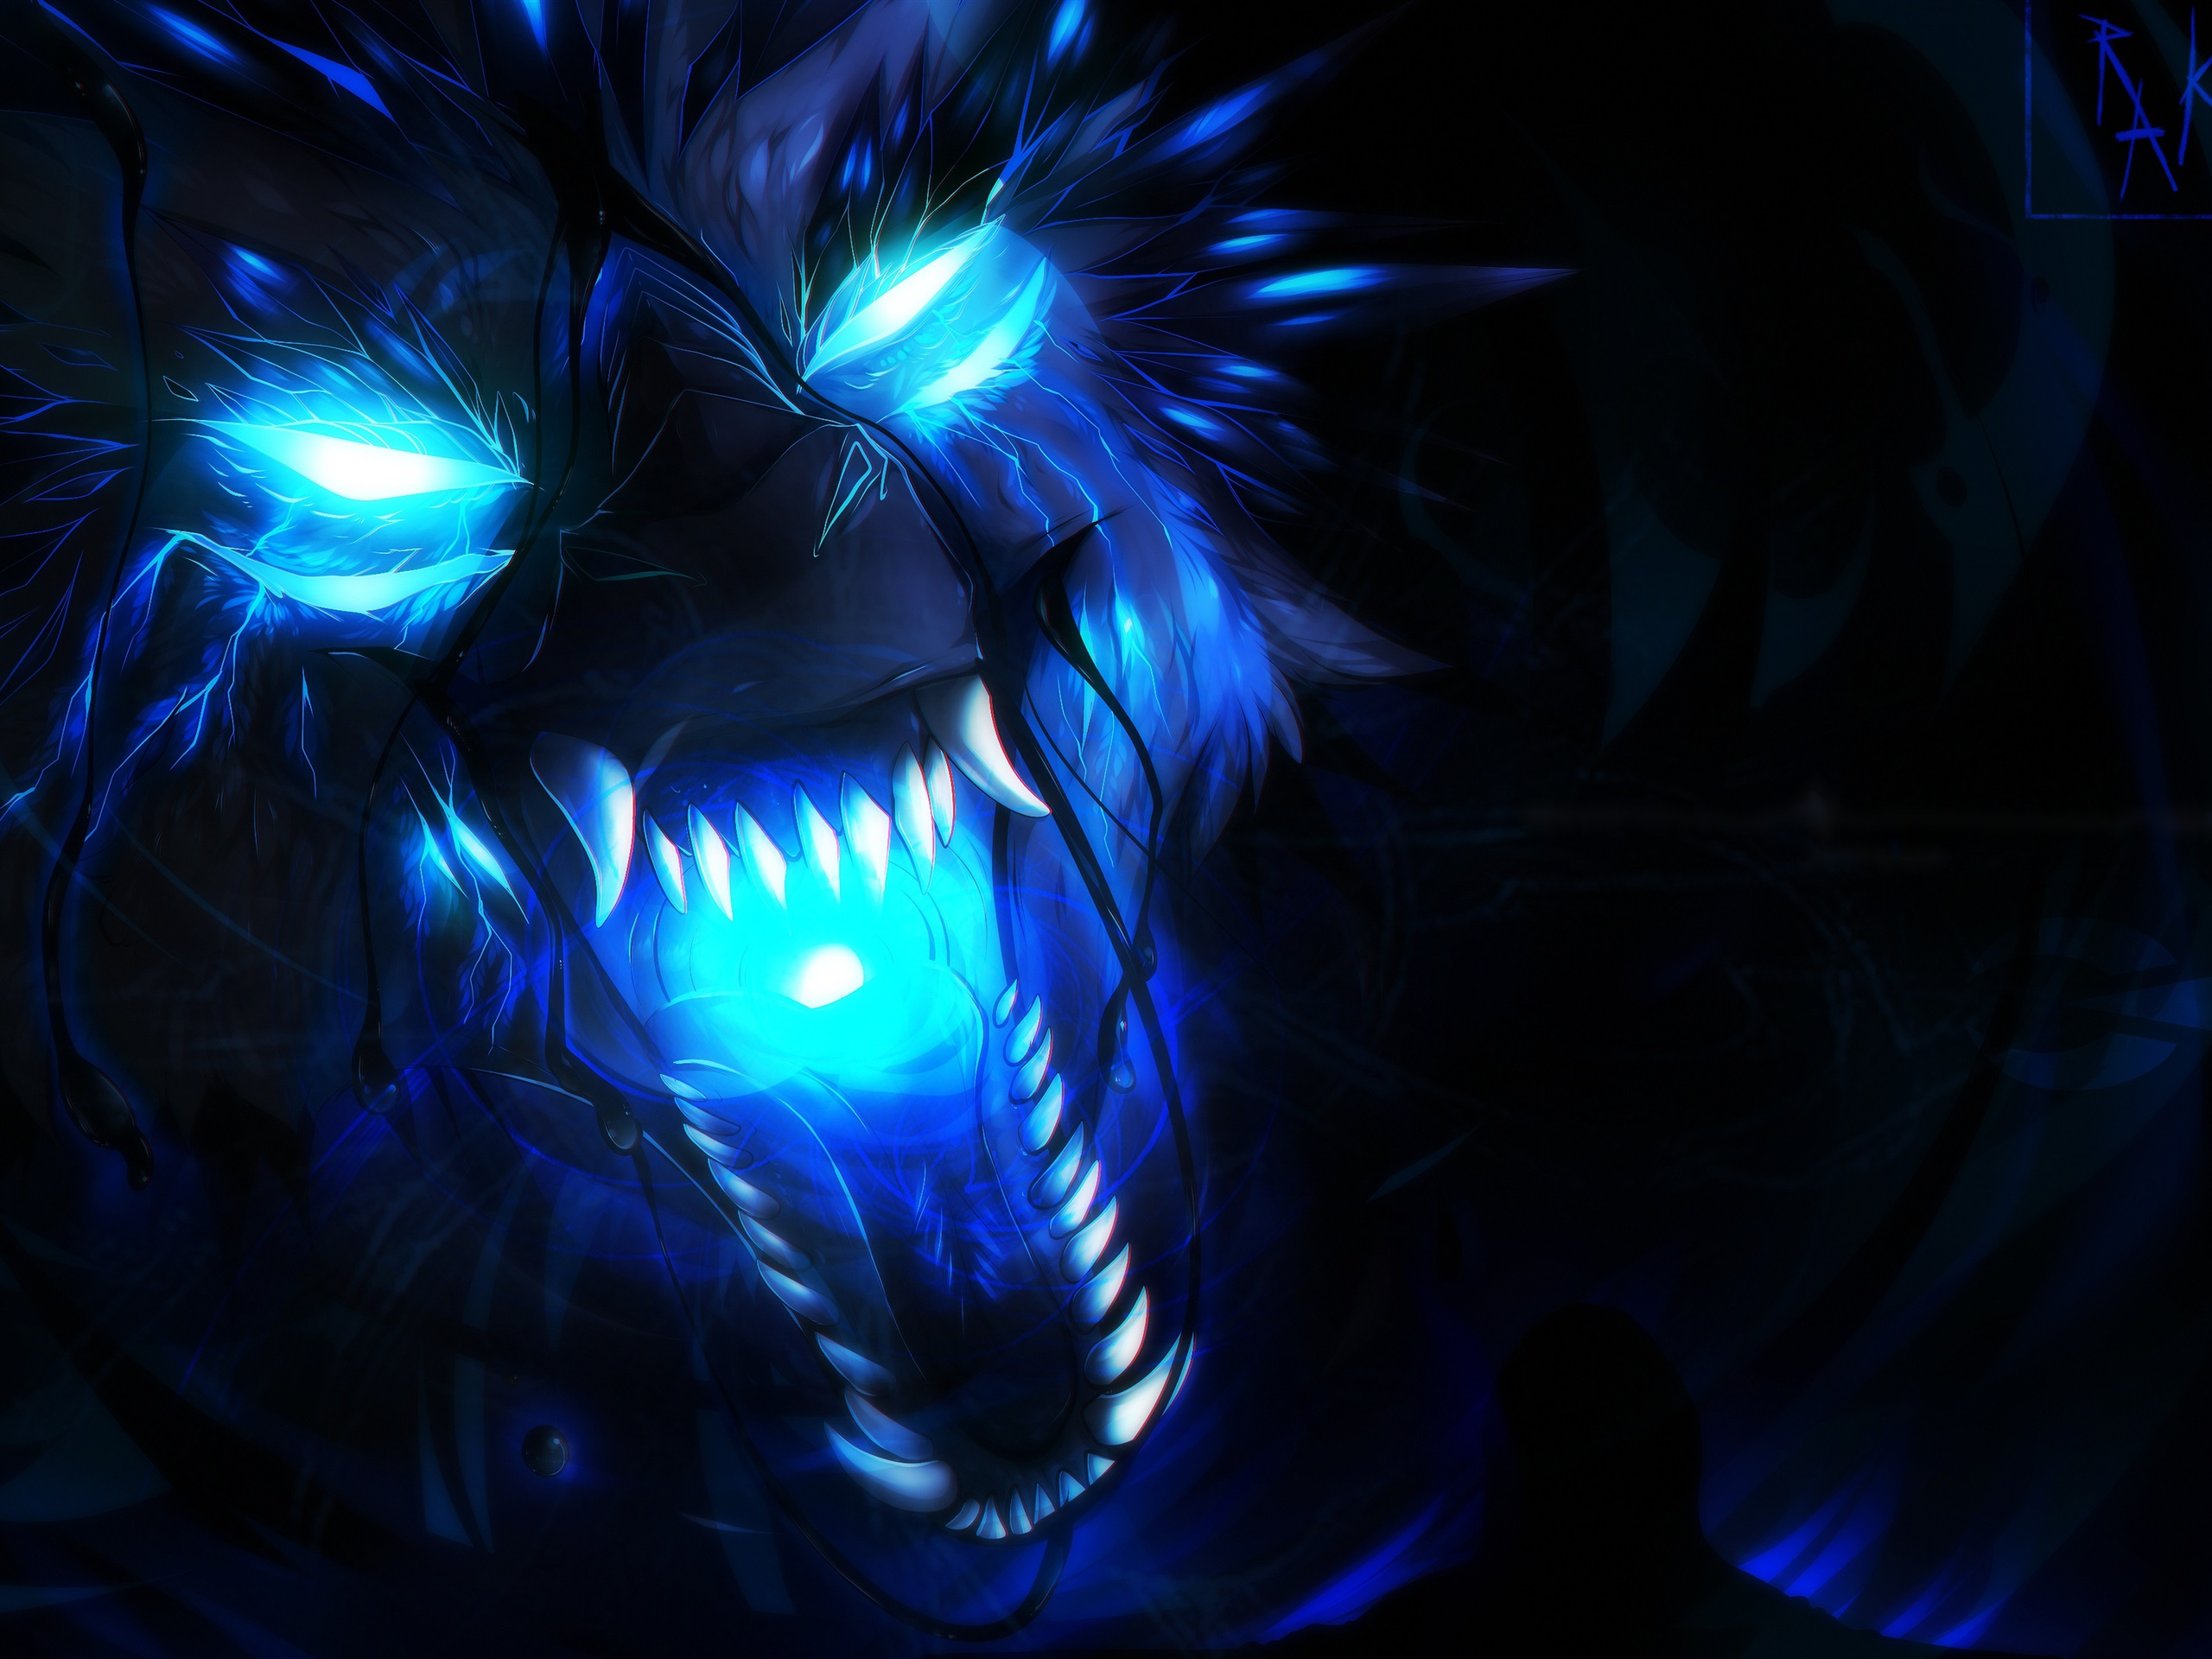 Wallpaper Wolf blue flame art picture 3840x2160 UHD 4K Picture 2560x1920